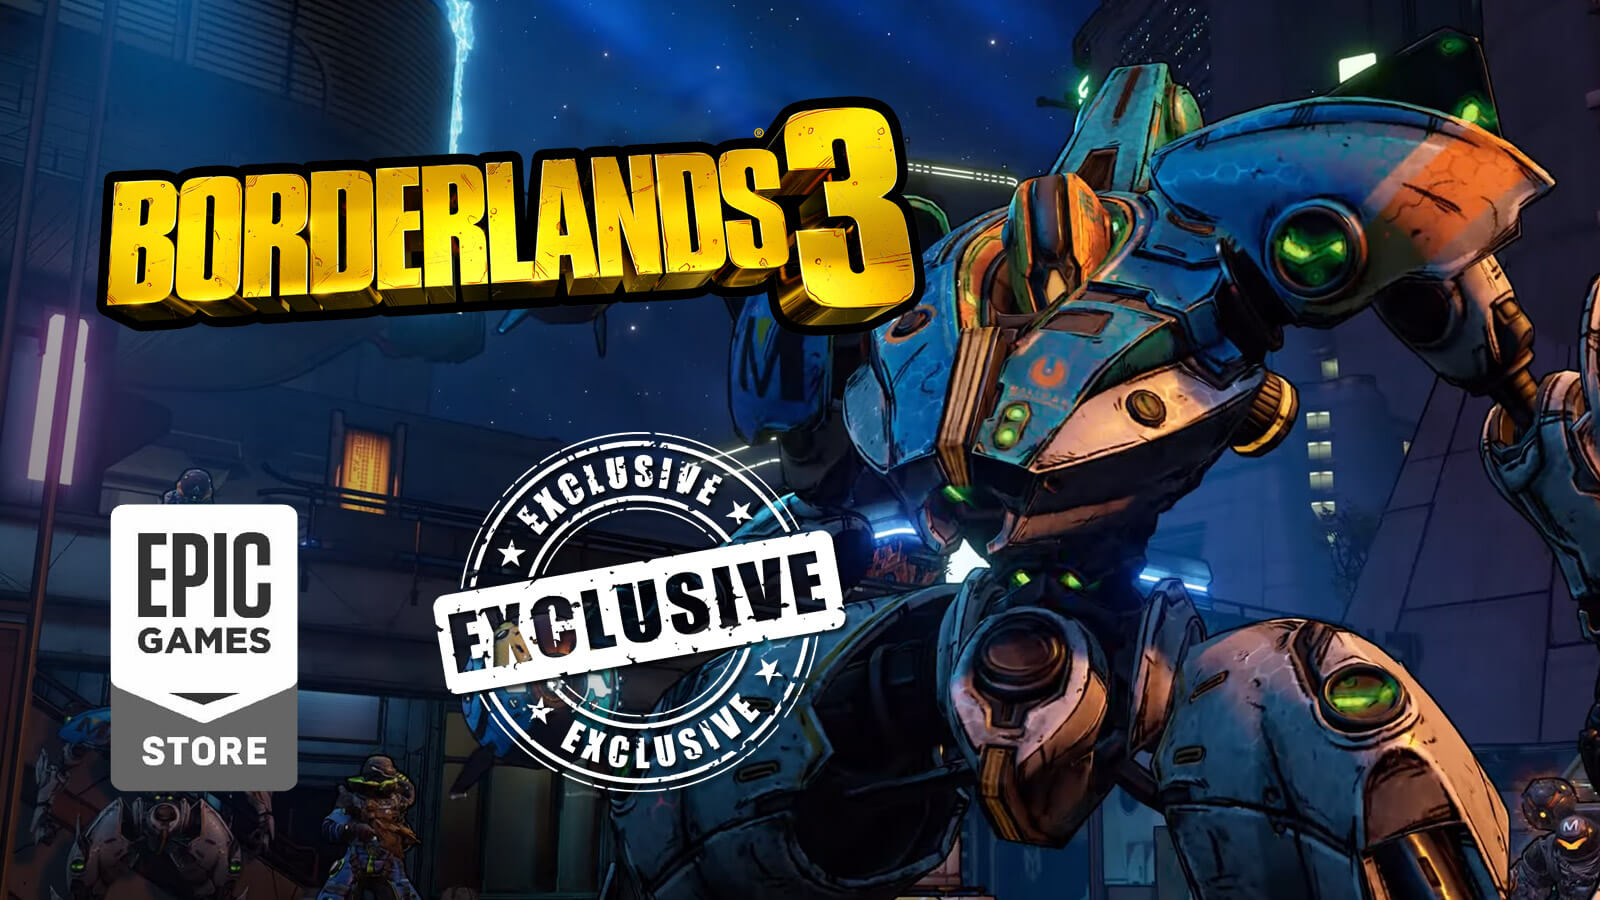 Borderlands 3 to Be Epic Games Store Exclusive - Gameslaught